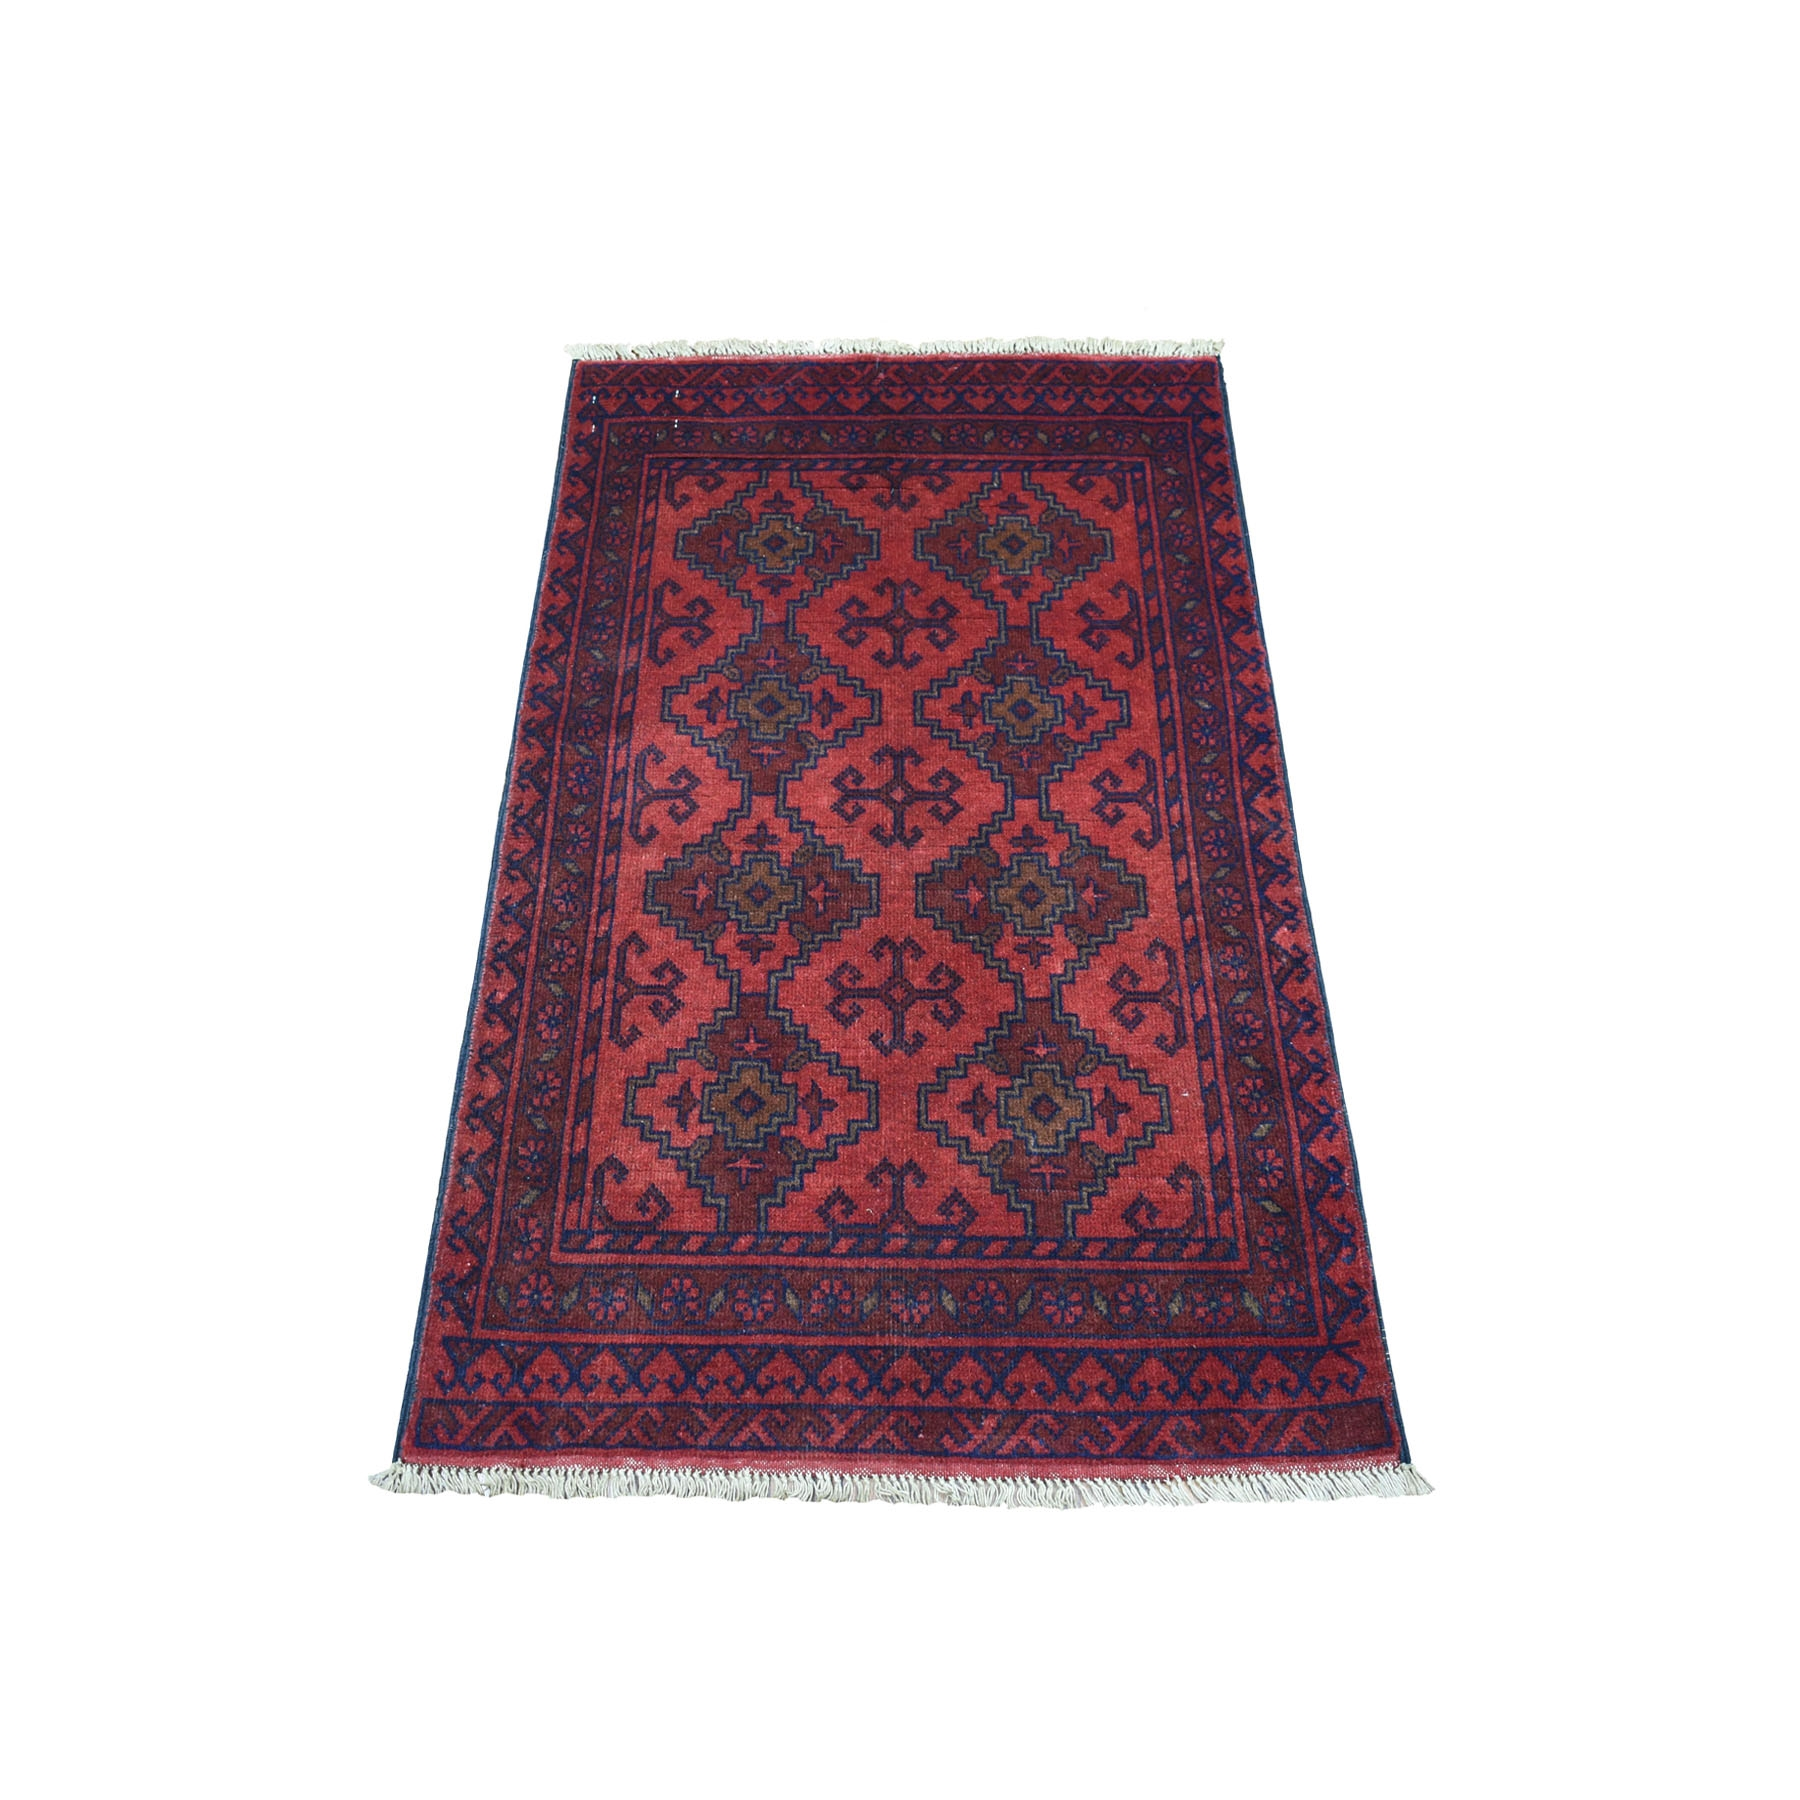 "2'4""X3'10"" Deep And Saturated Red Geometric Afghan Andkhoy Pure Wool Hand Knotted Oriental Rug moaecd07"